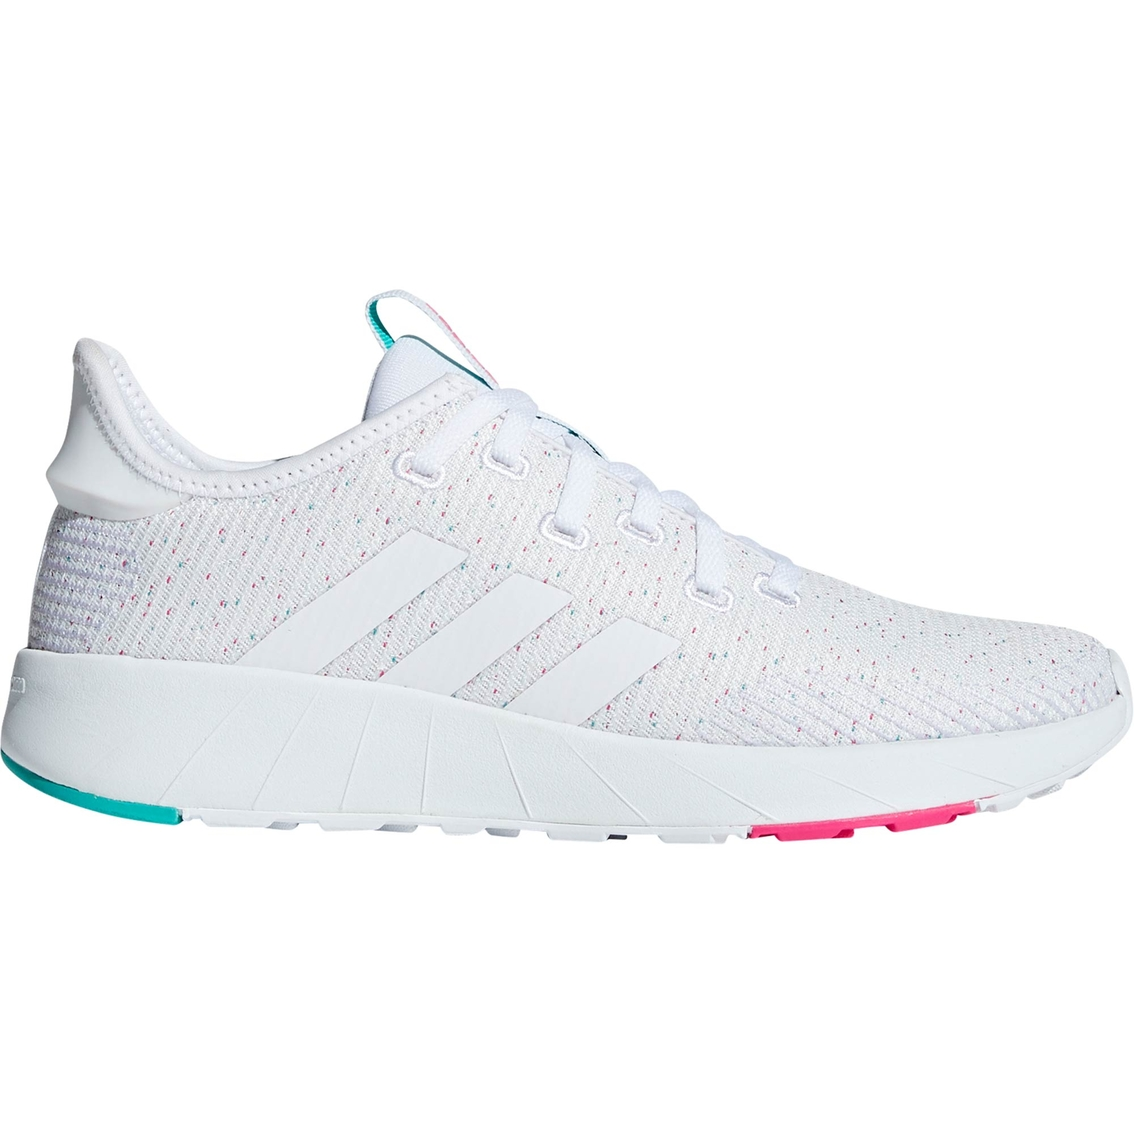 1540a4f725e Adidas Women s Questar X Byd Running Shoes